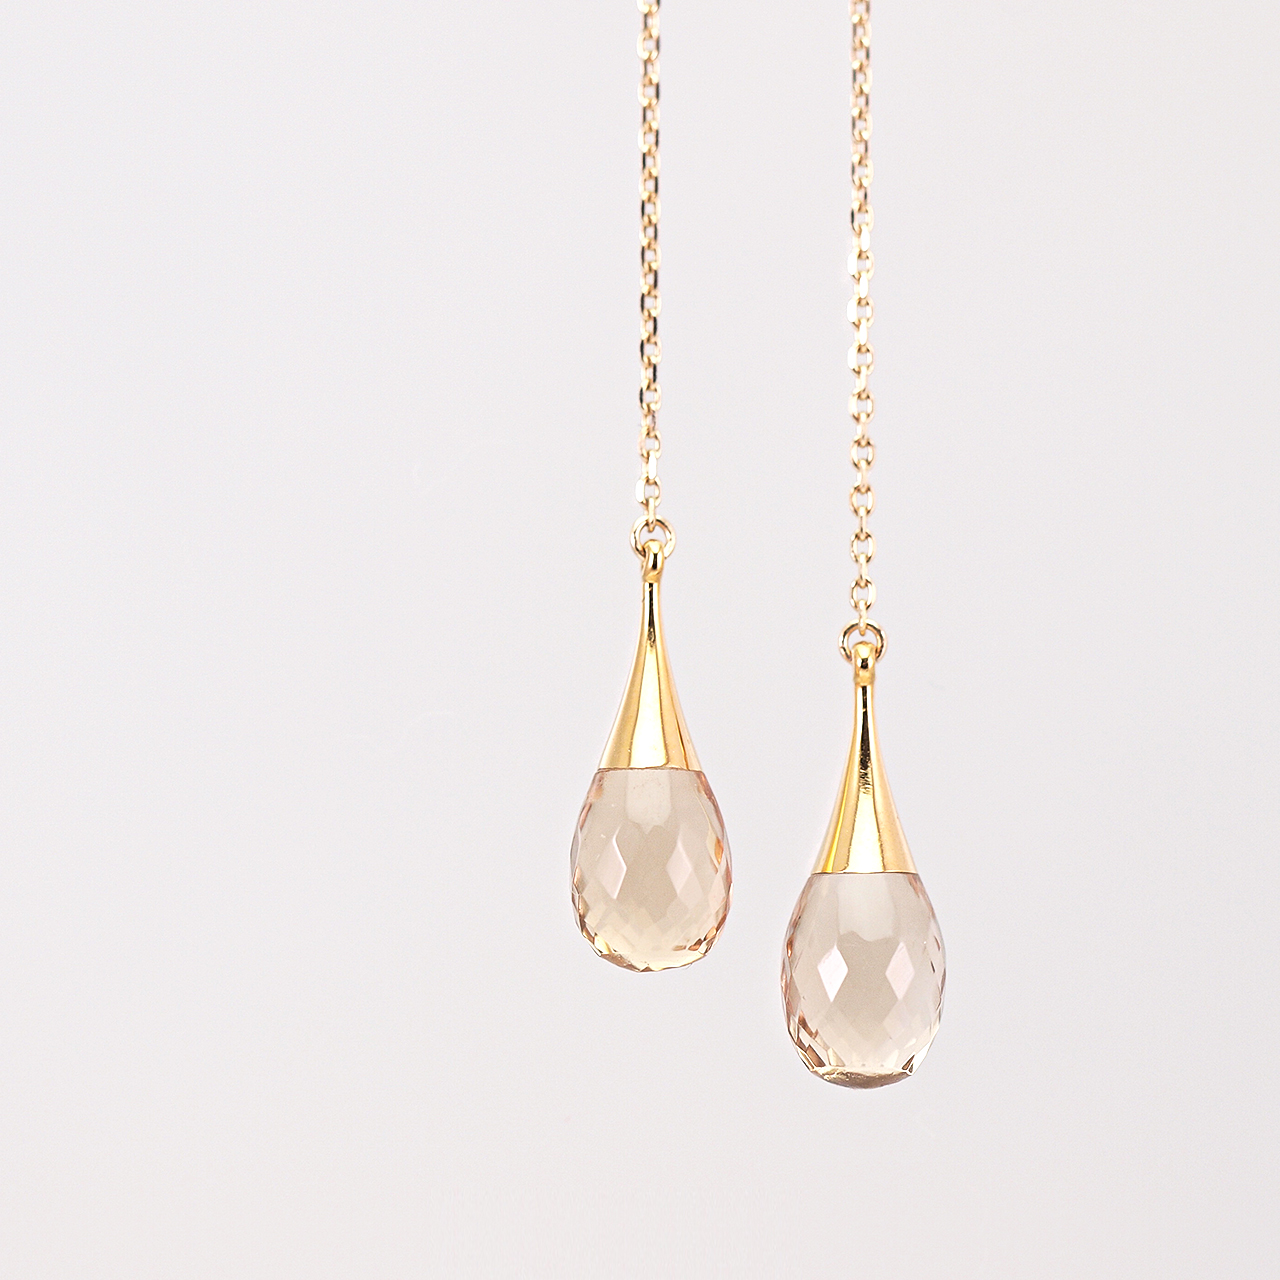 Drop american earrings / Champagne quartz